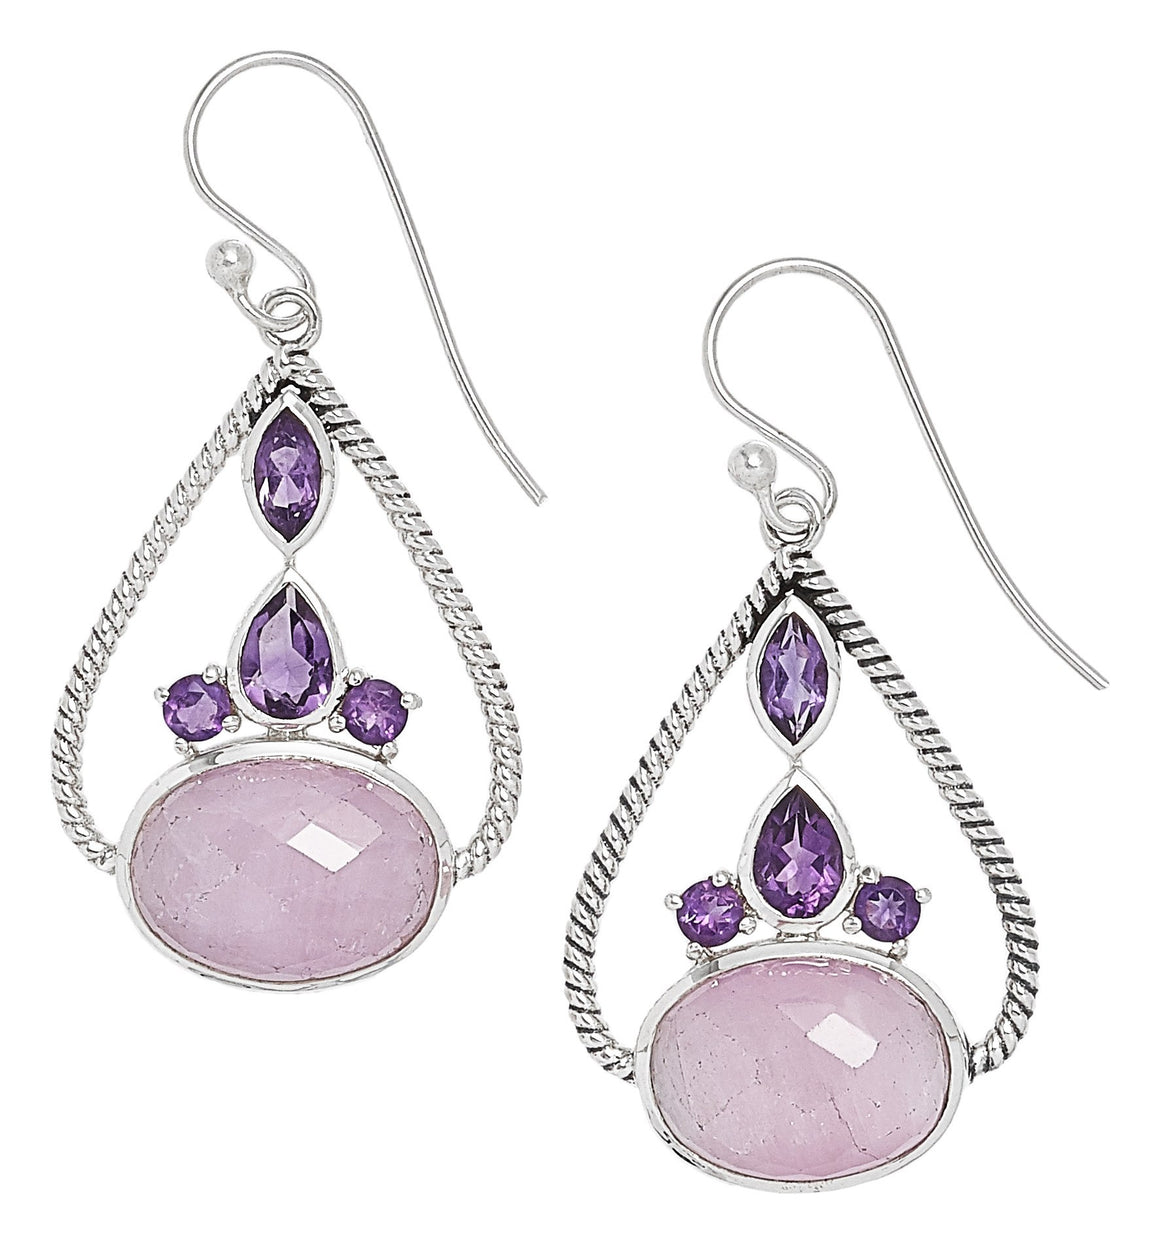 Kunzite and Amethyst Earrings